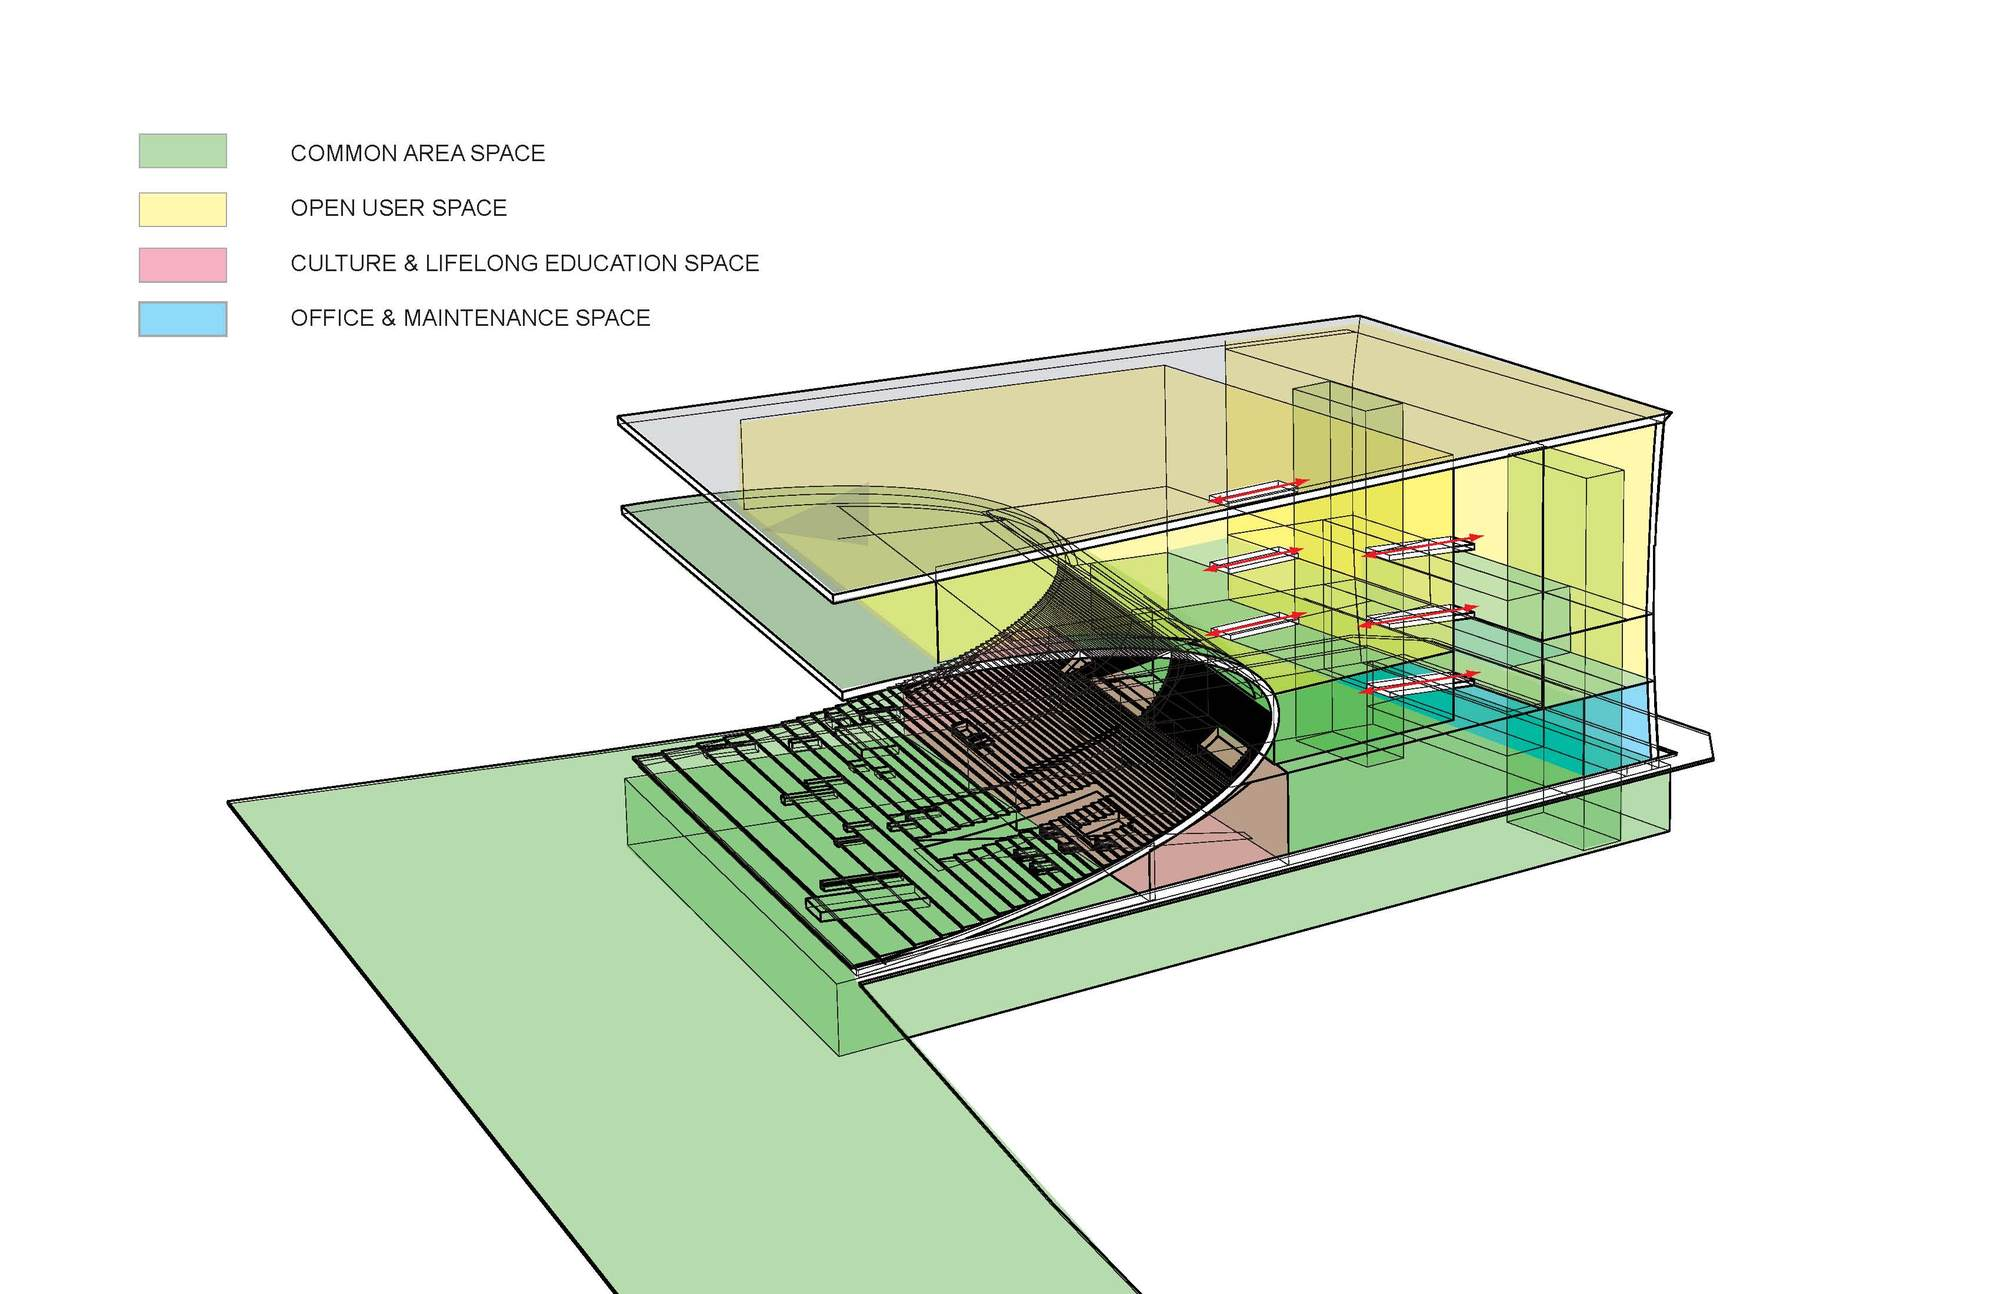 architectural program diagram and 2 goodman heat pump defrost control wiring gallery of daegu gosan public library competition entry